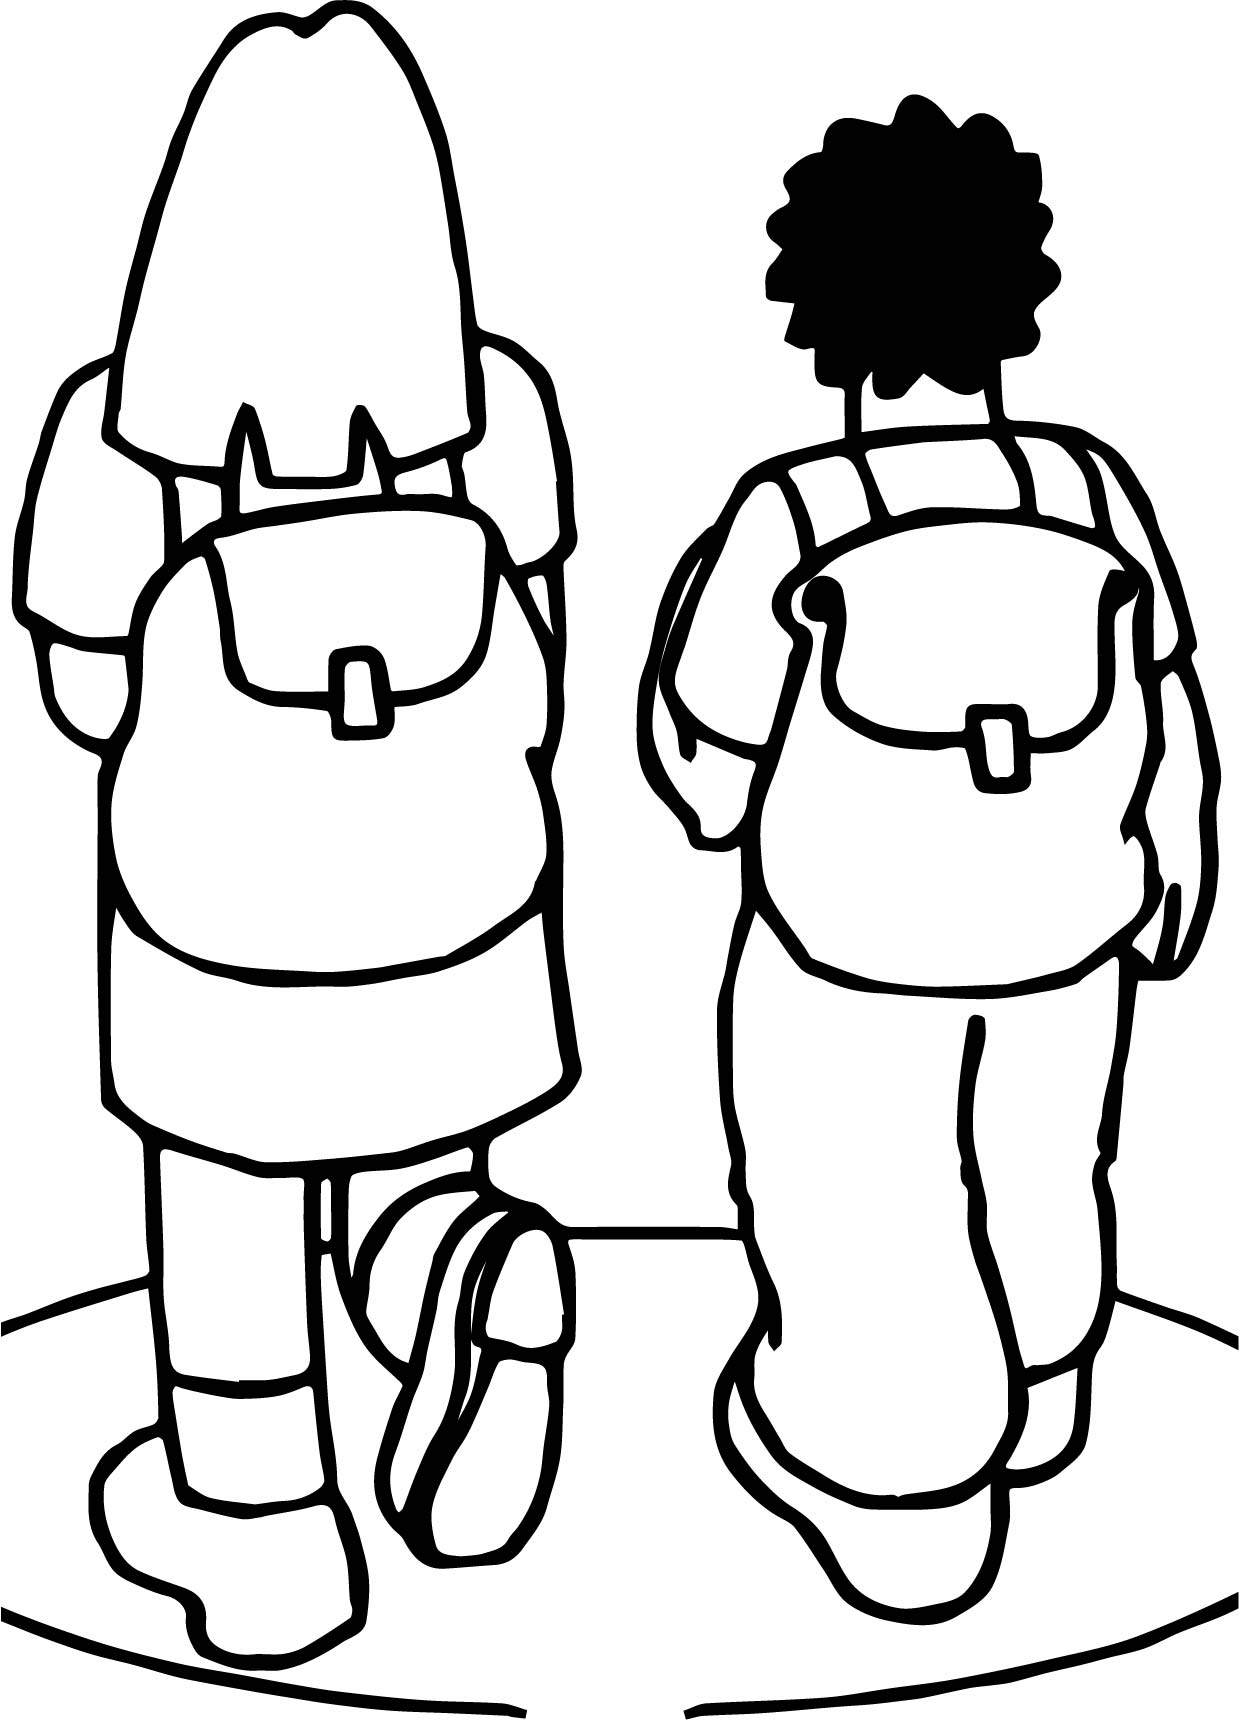 School Bag Page Coloring Pages